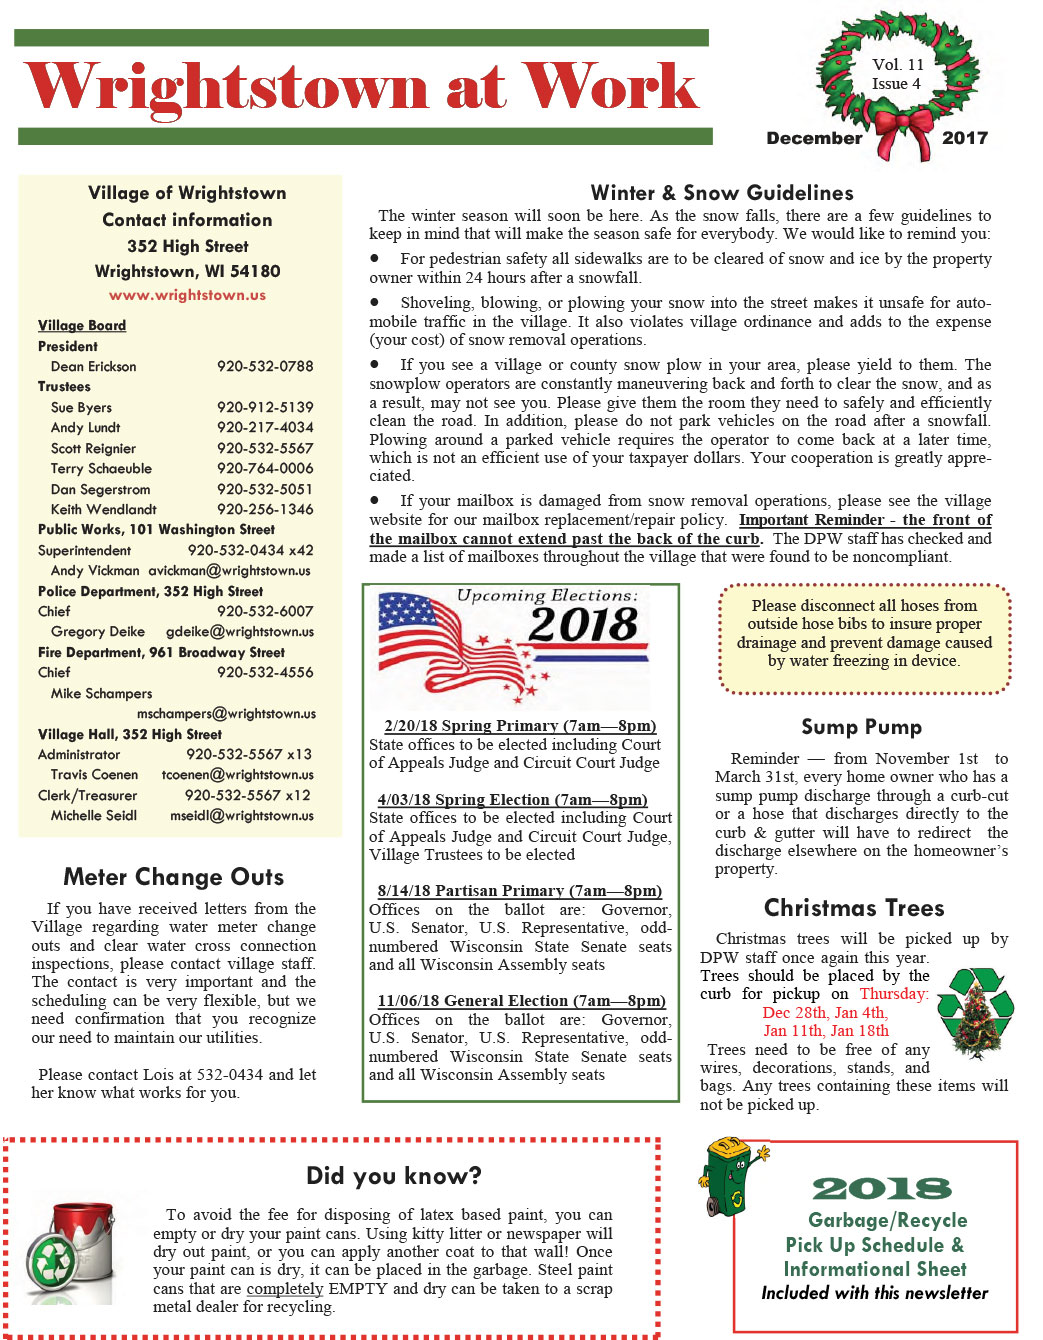 2017 December Wrightstown News,Wisconsin,city news,wrightstown at work